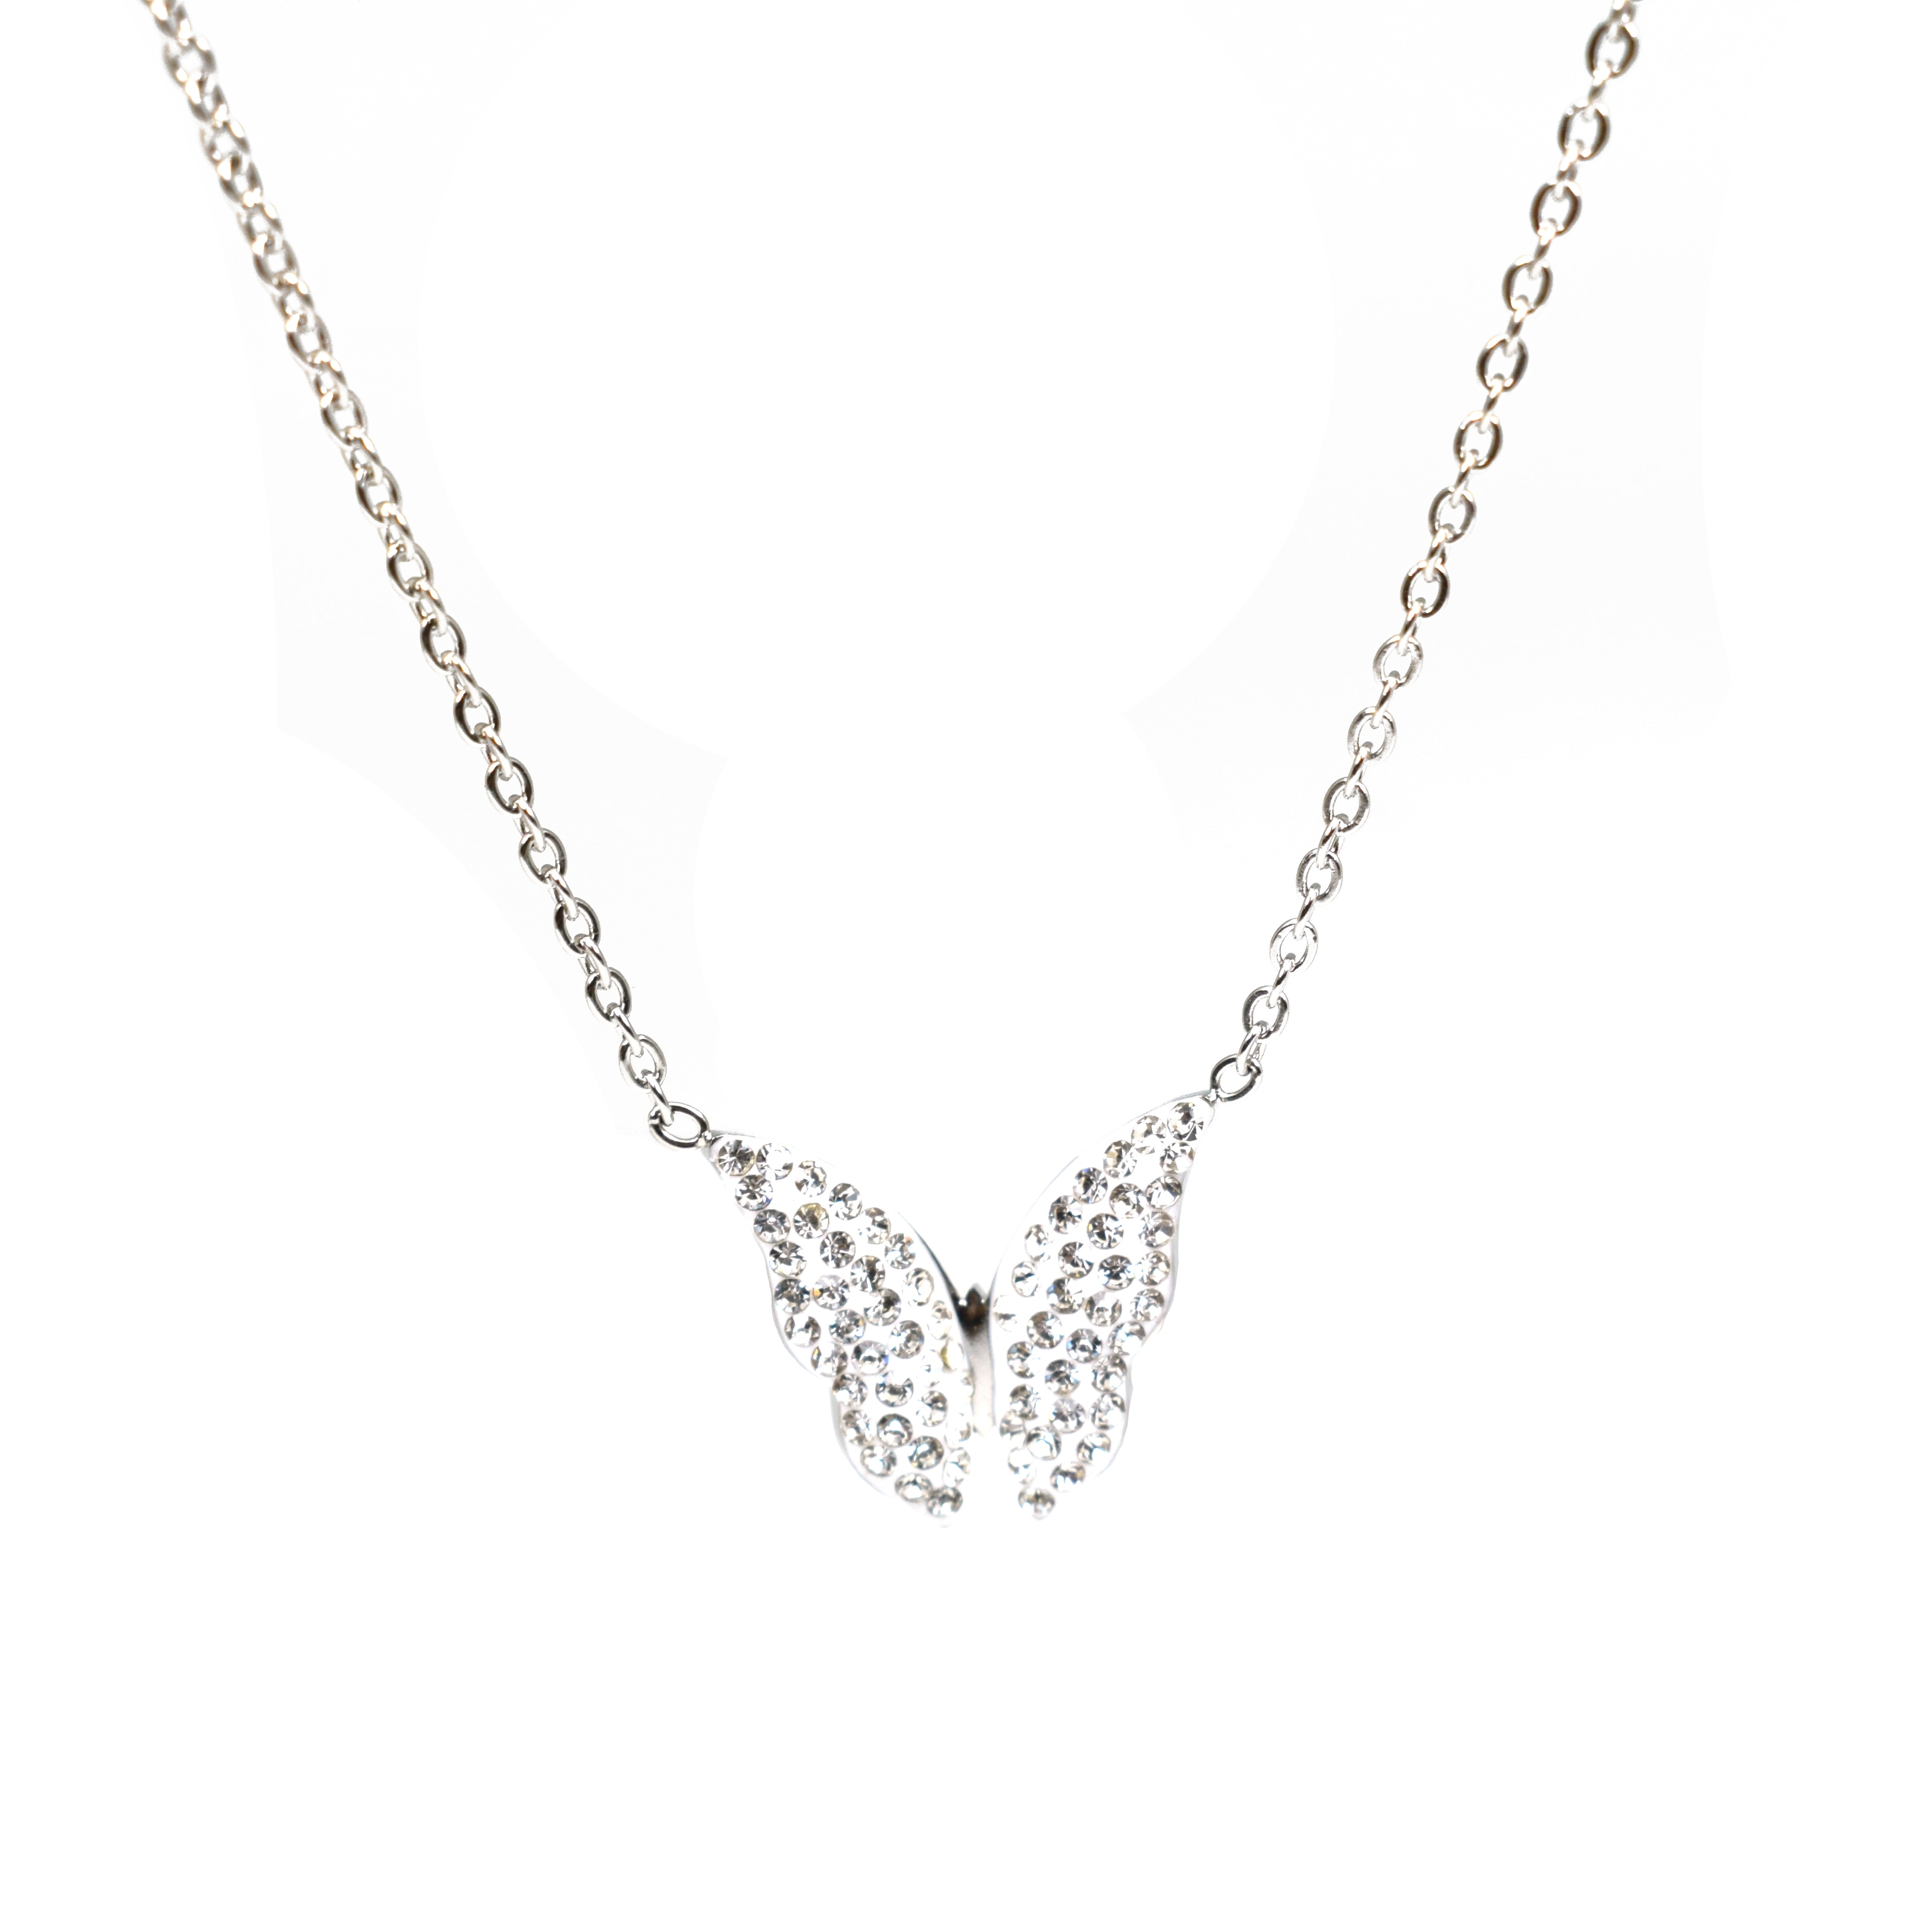 Stainless Steel Chain Butterfly Necklace for Women Gold Wholesale CZ Pendant Choker Necklace Jewelry Bridesmaid Gifts